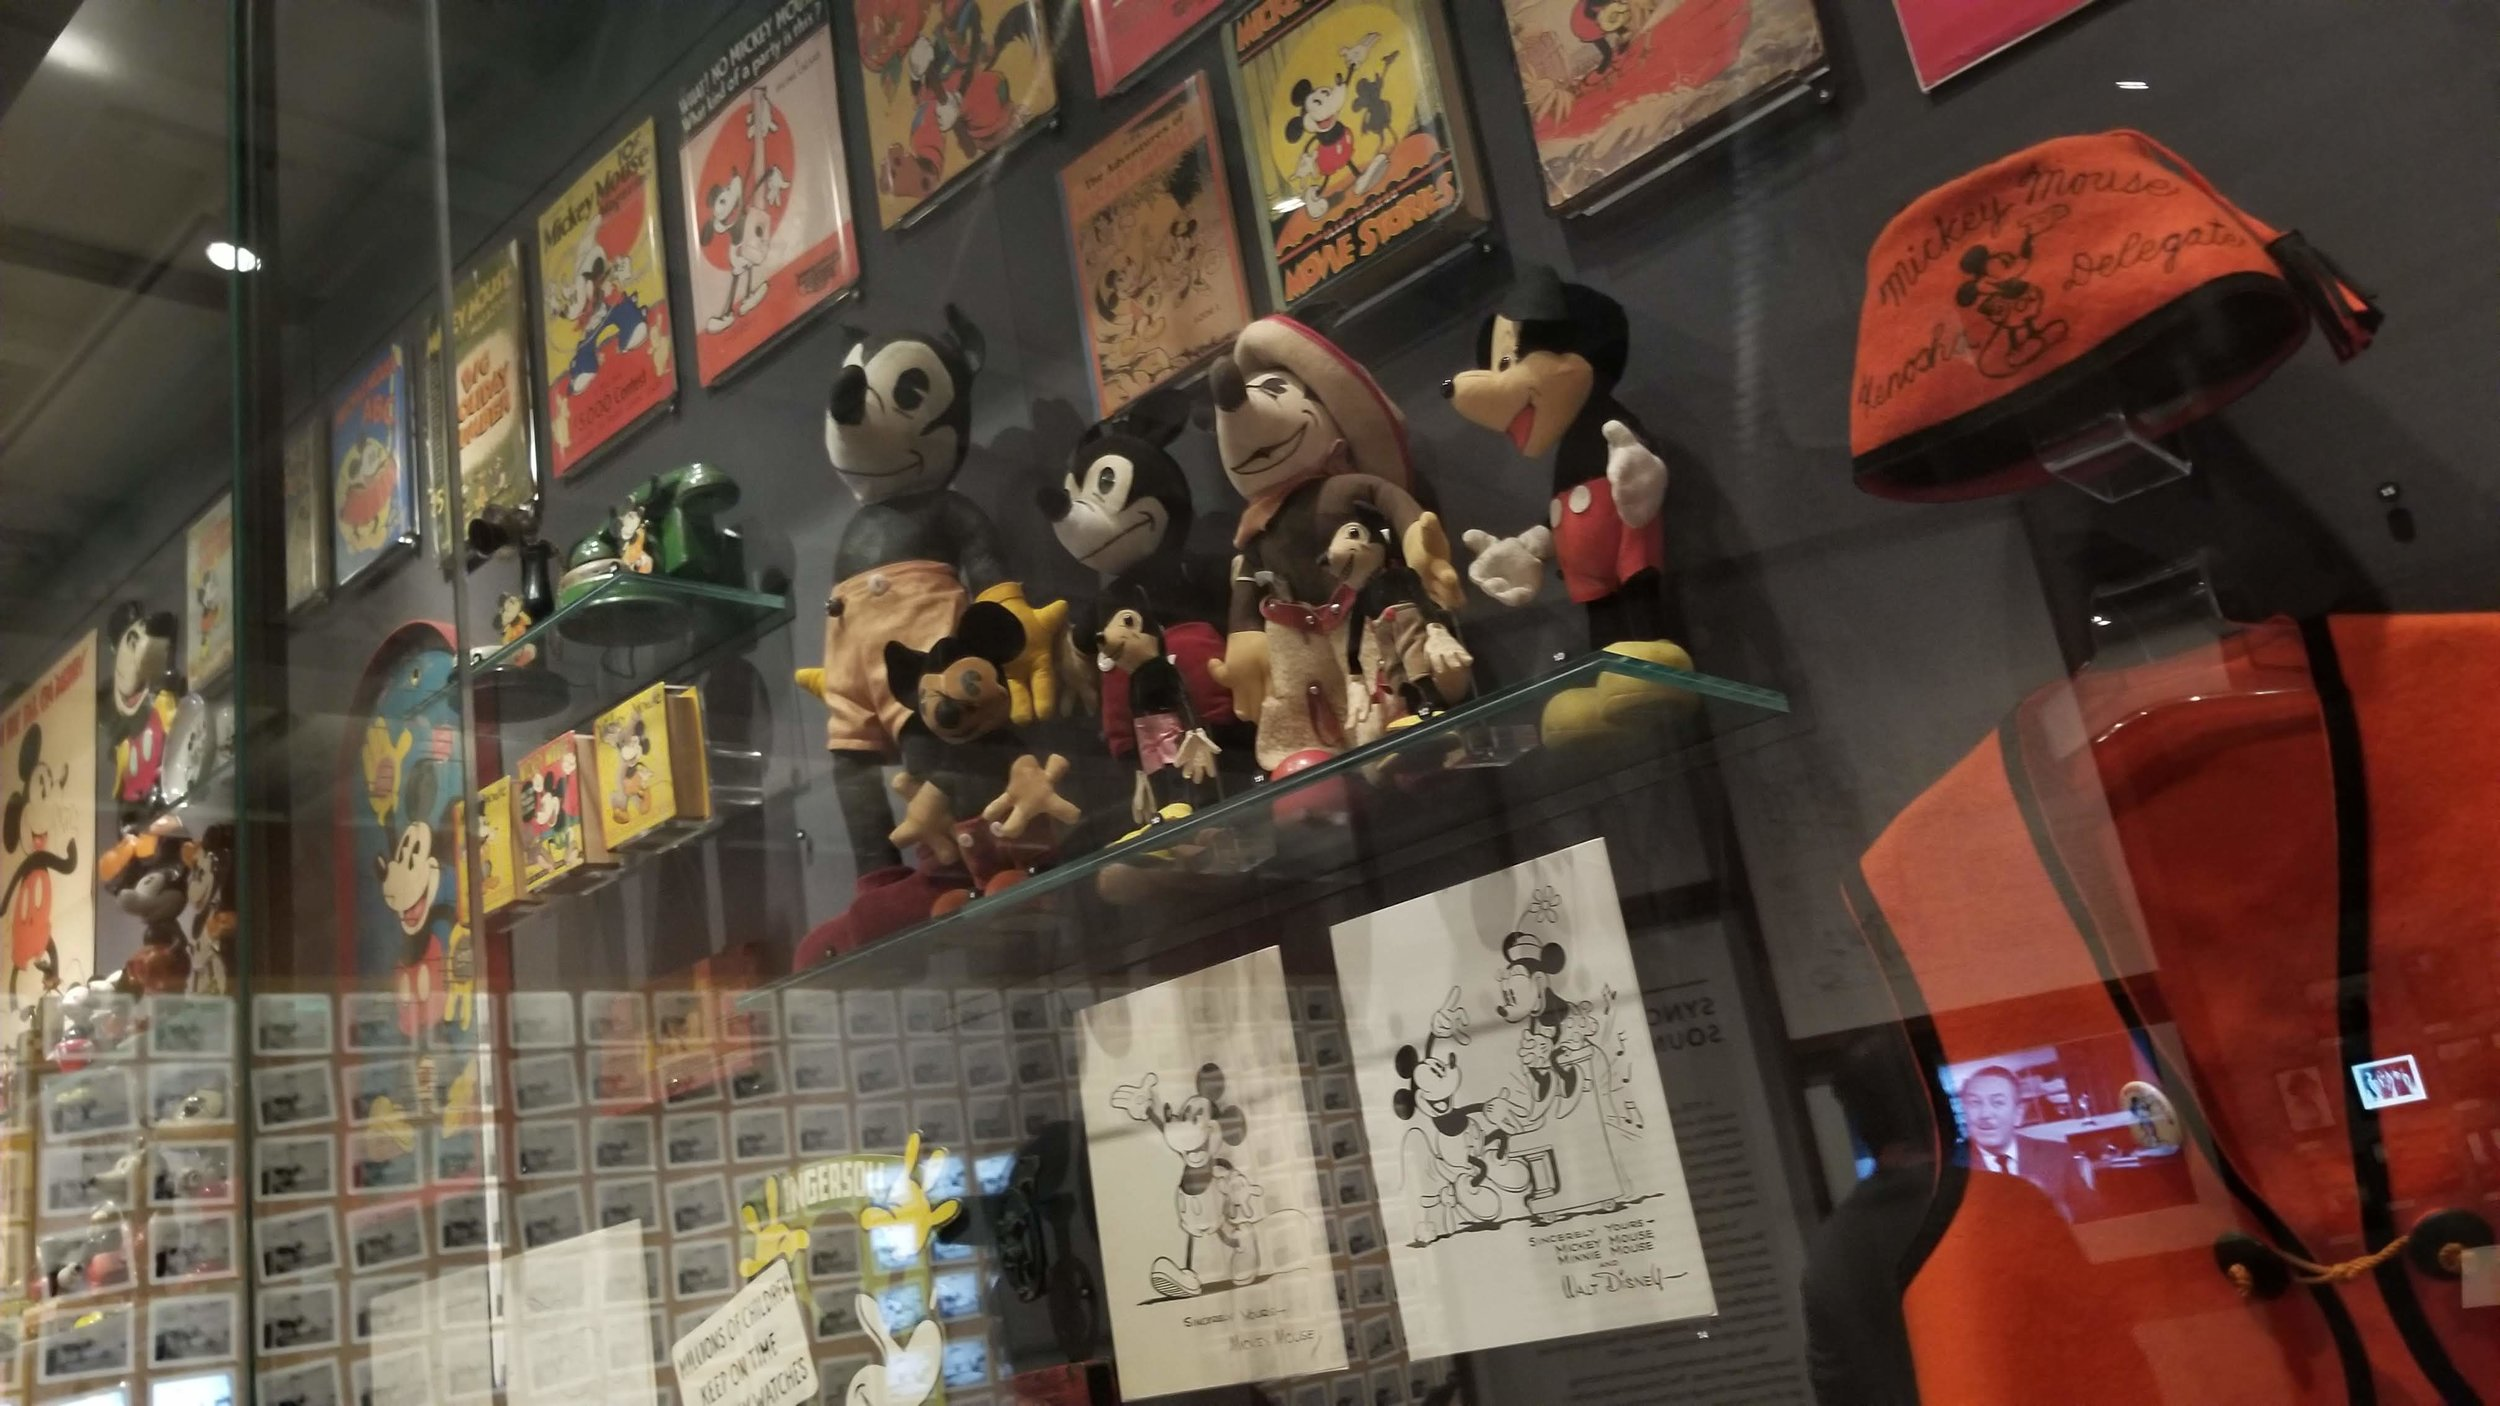 A drool worthy Mickey Mouse collection.